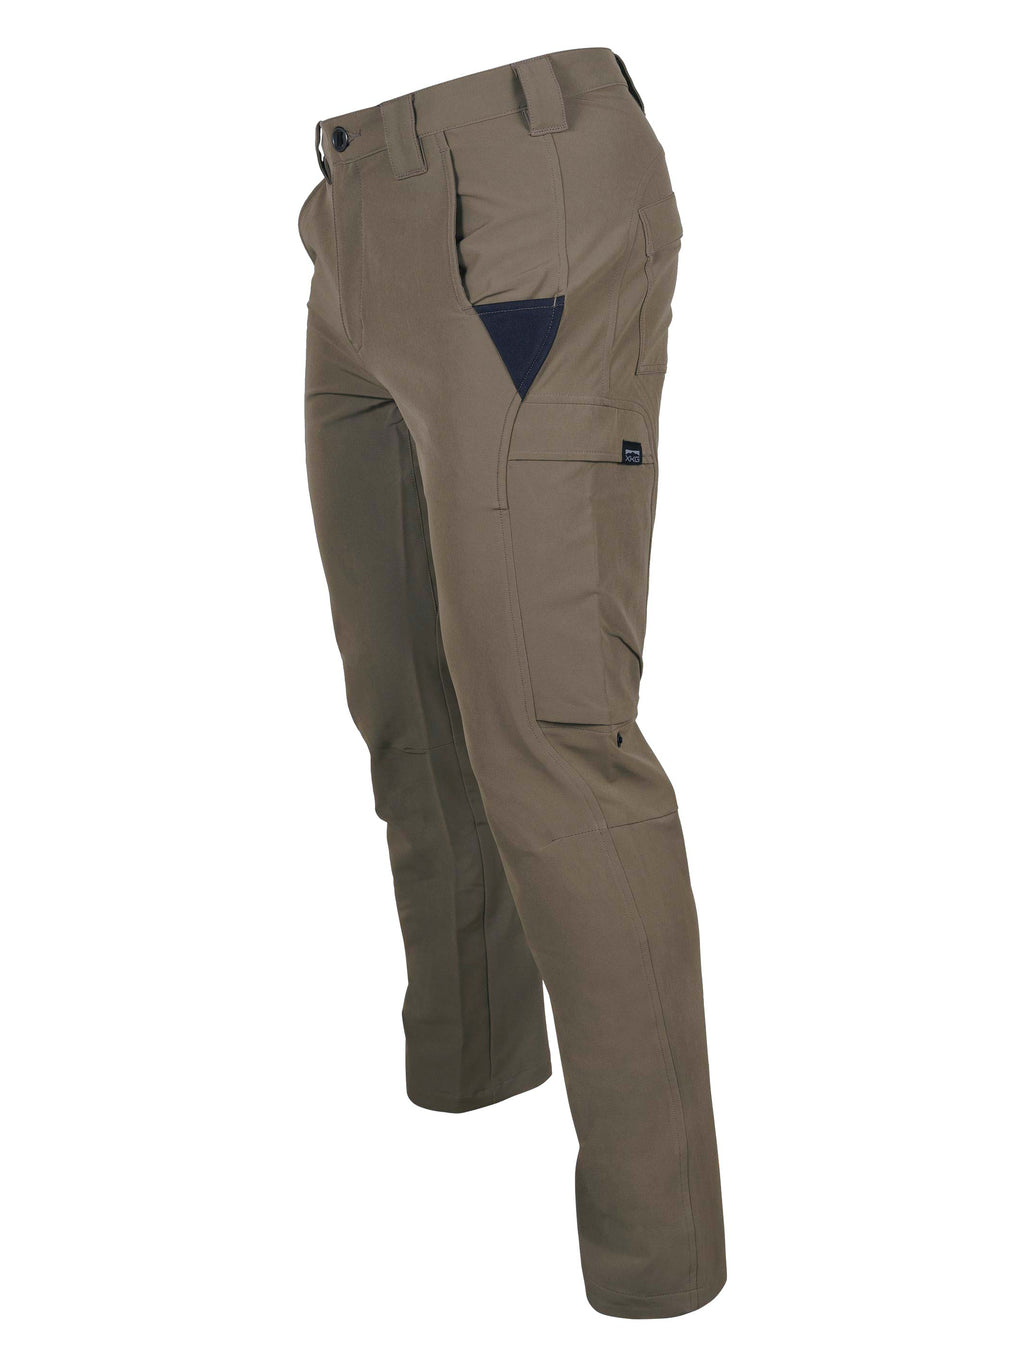 XKG Ridge Pant in Dark Khaki | King's Camo